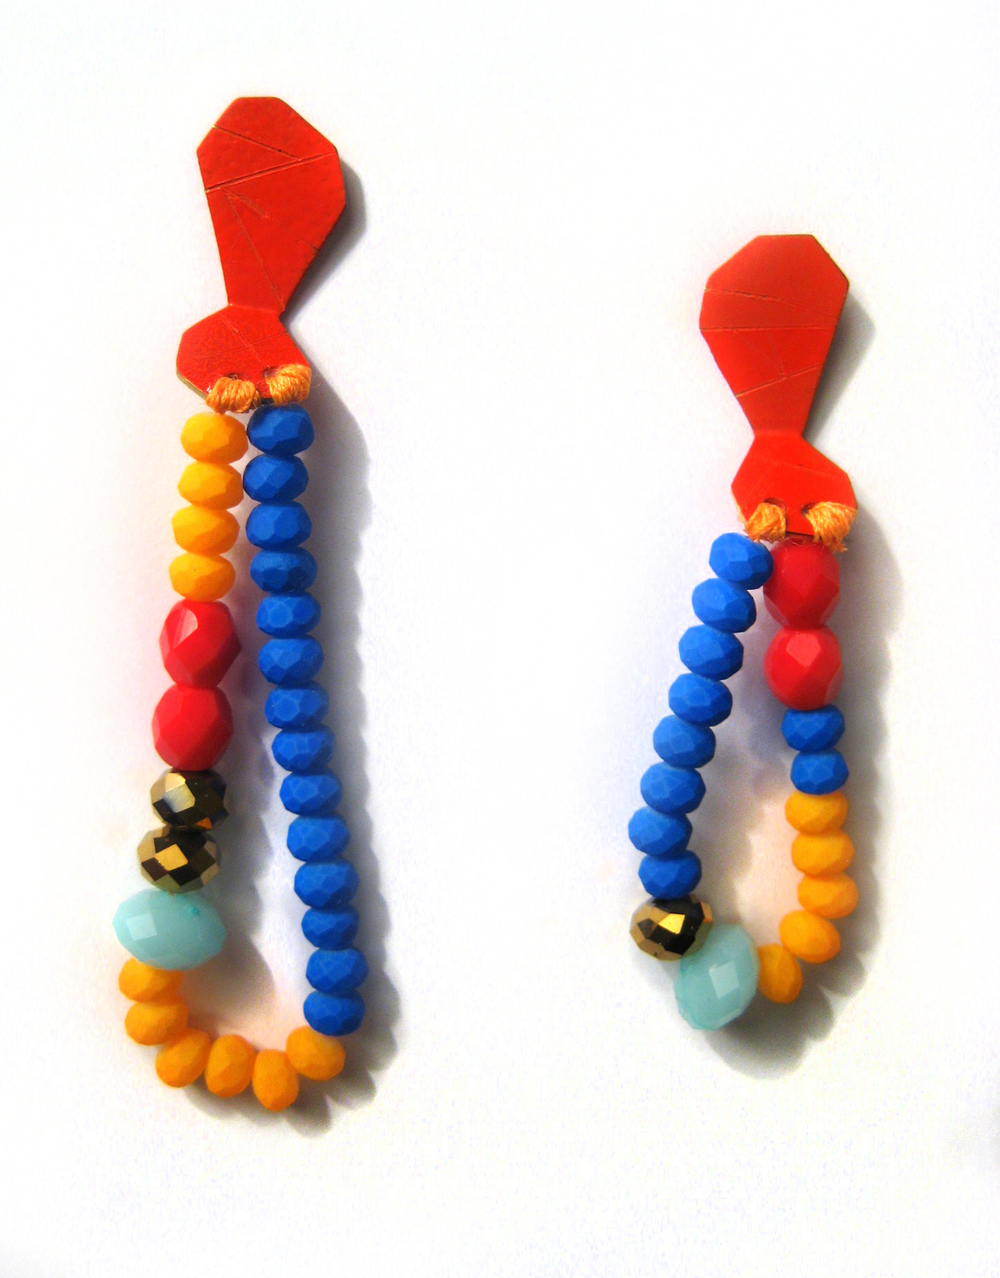 E8 Voegele, Stephanie small orange geometric shape with blue, orange, red & gold beads.jpg